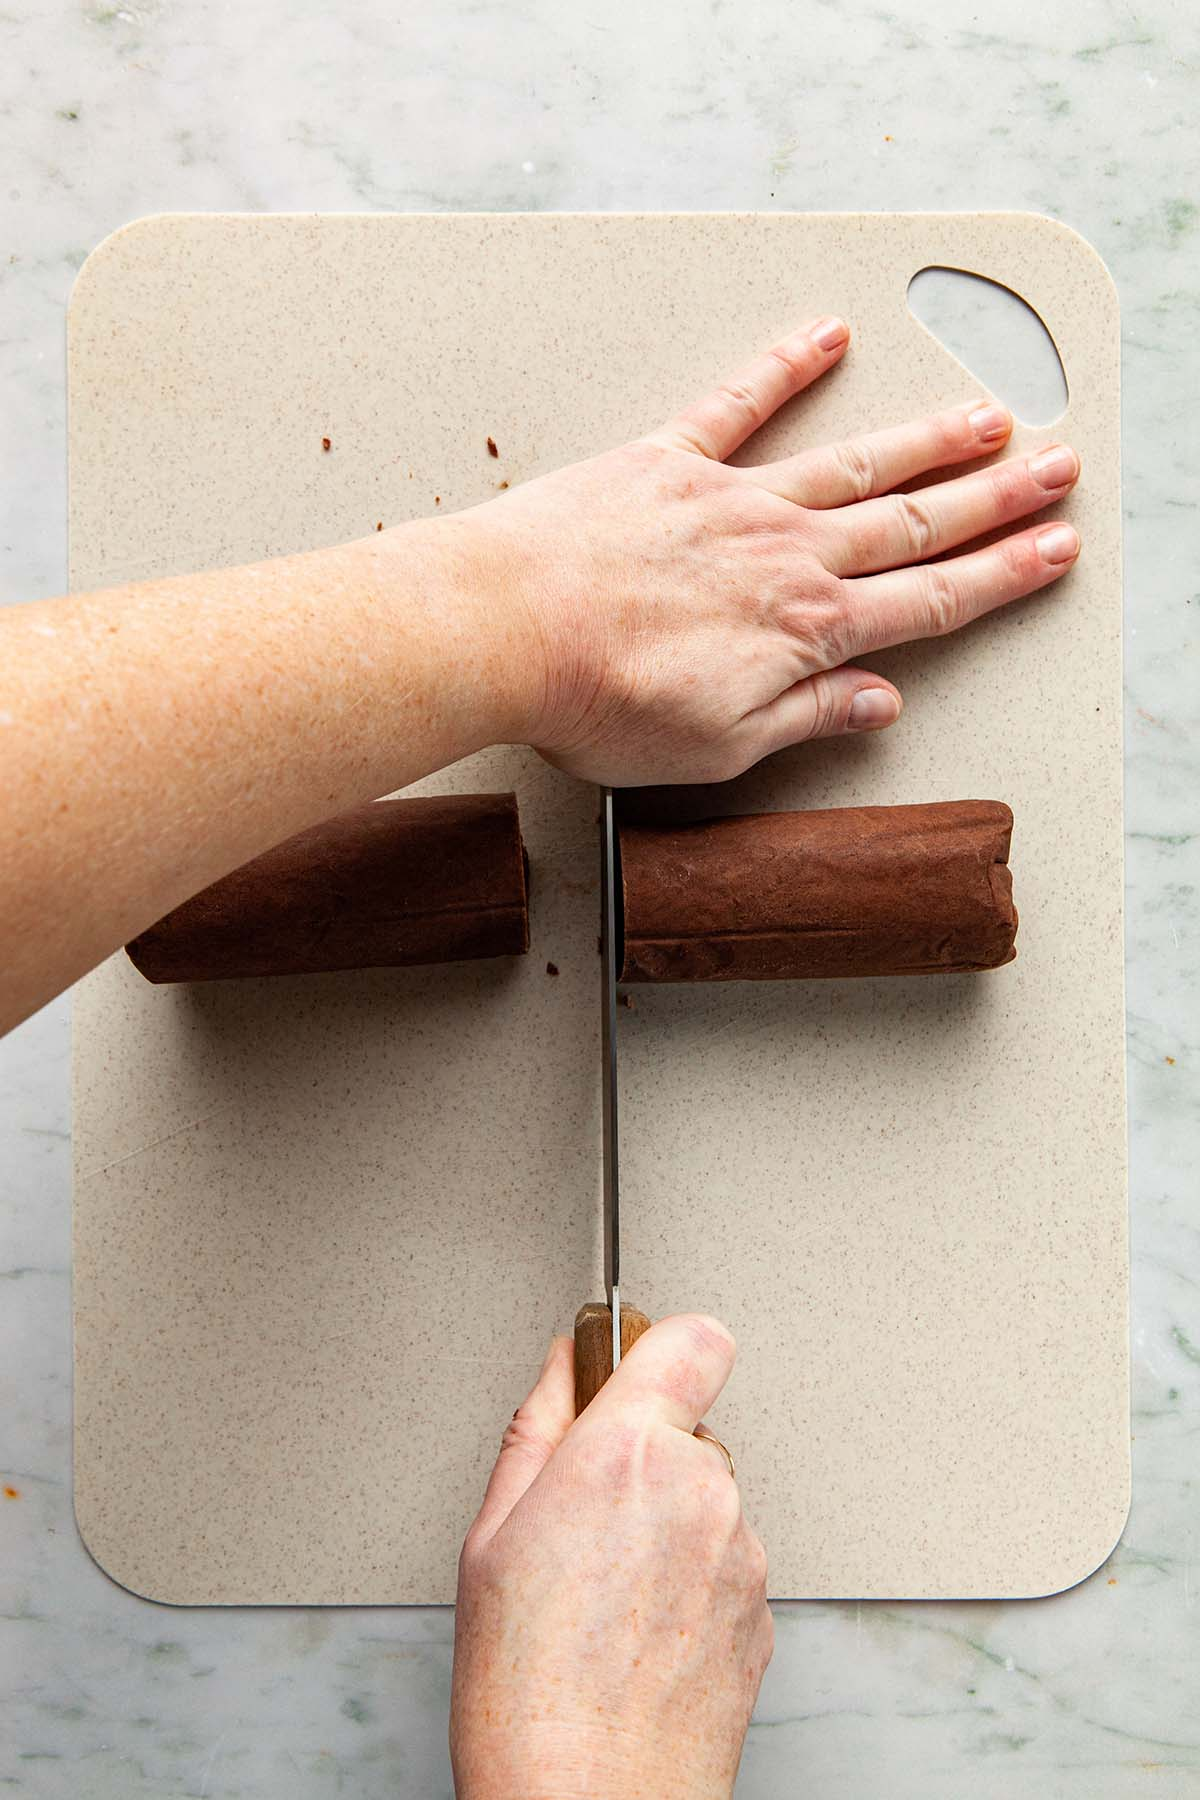 Hands slicing a cookie dough log with a knife.